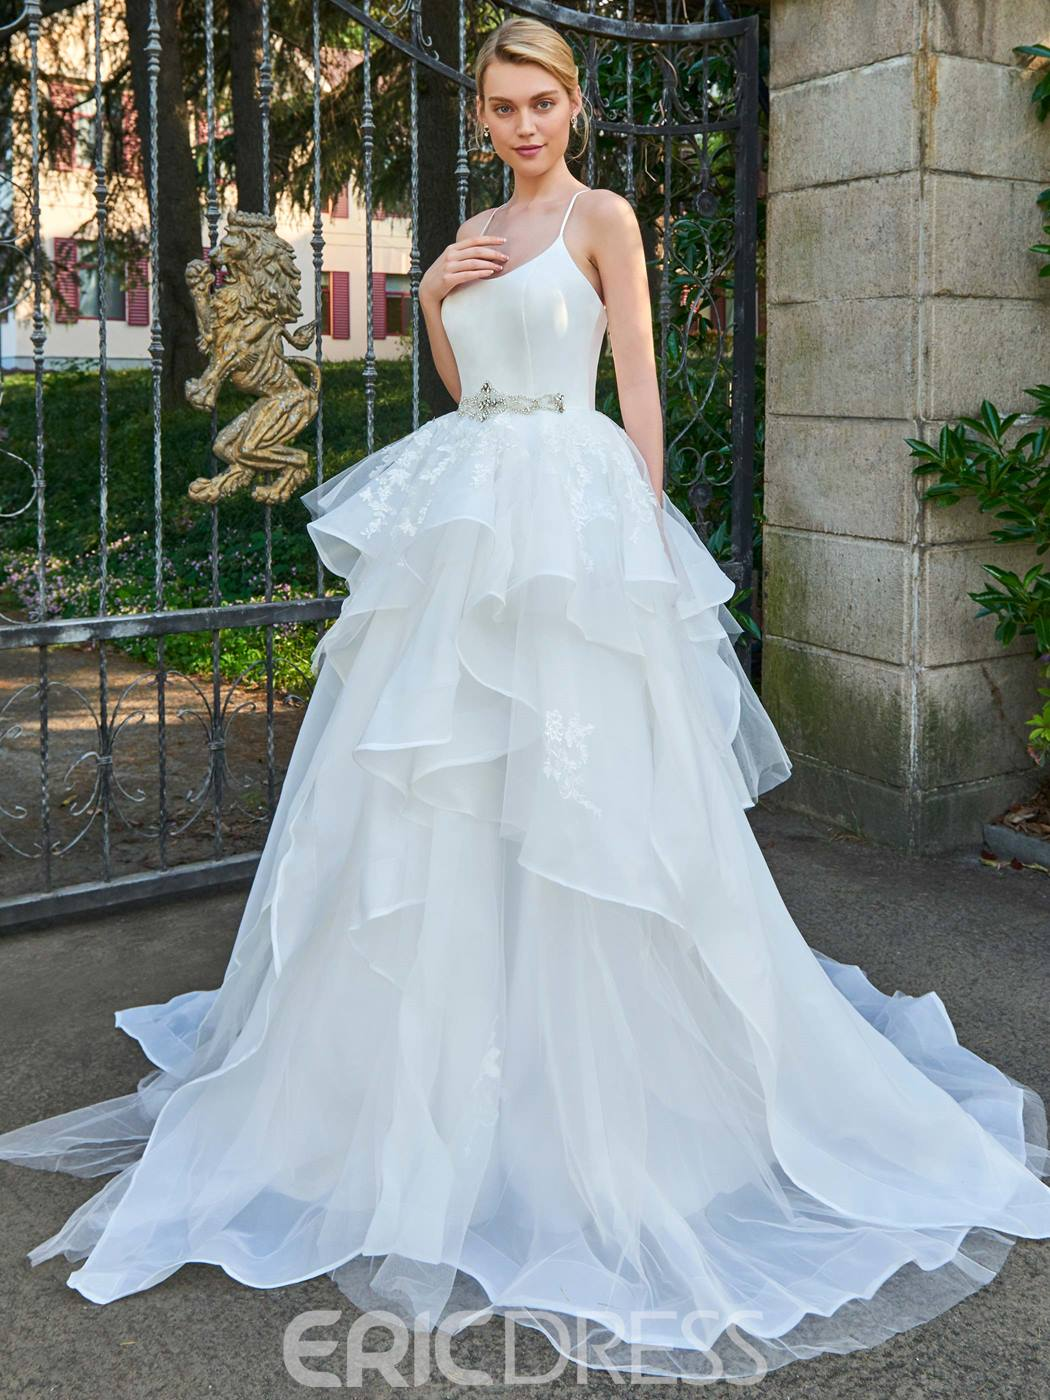 Ericdress Spaghetti Straps Ball Gown Beaded Wedding Dress